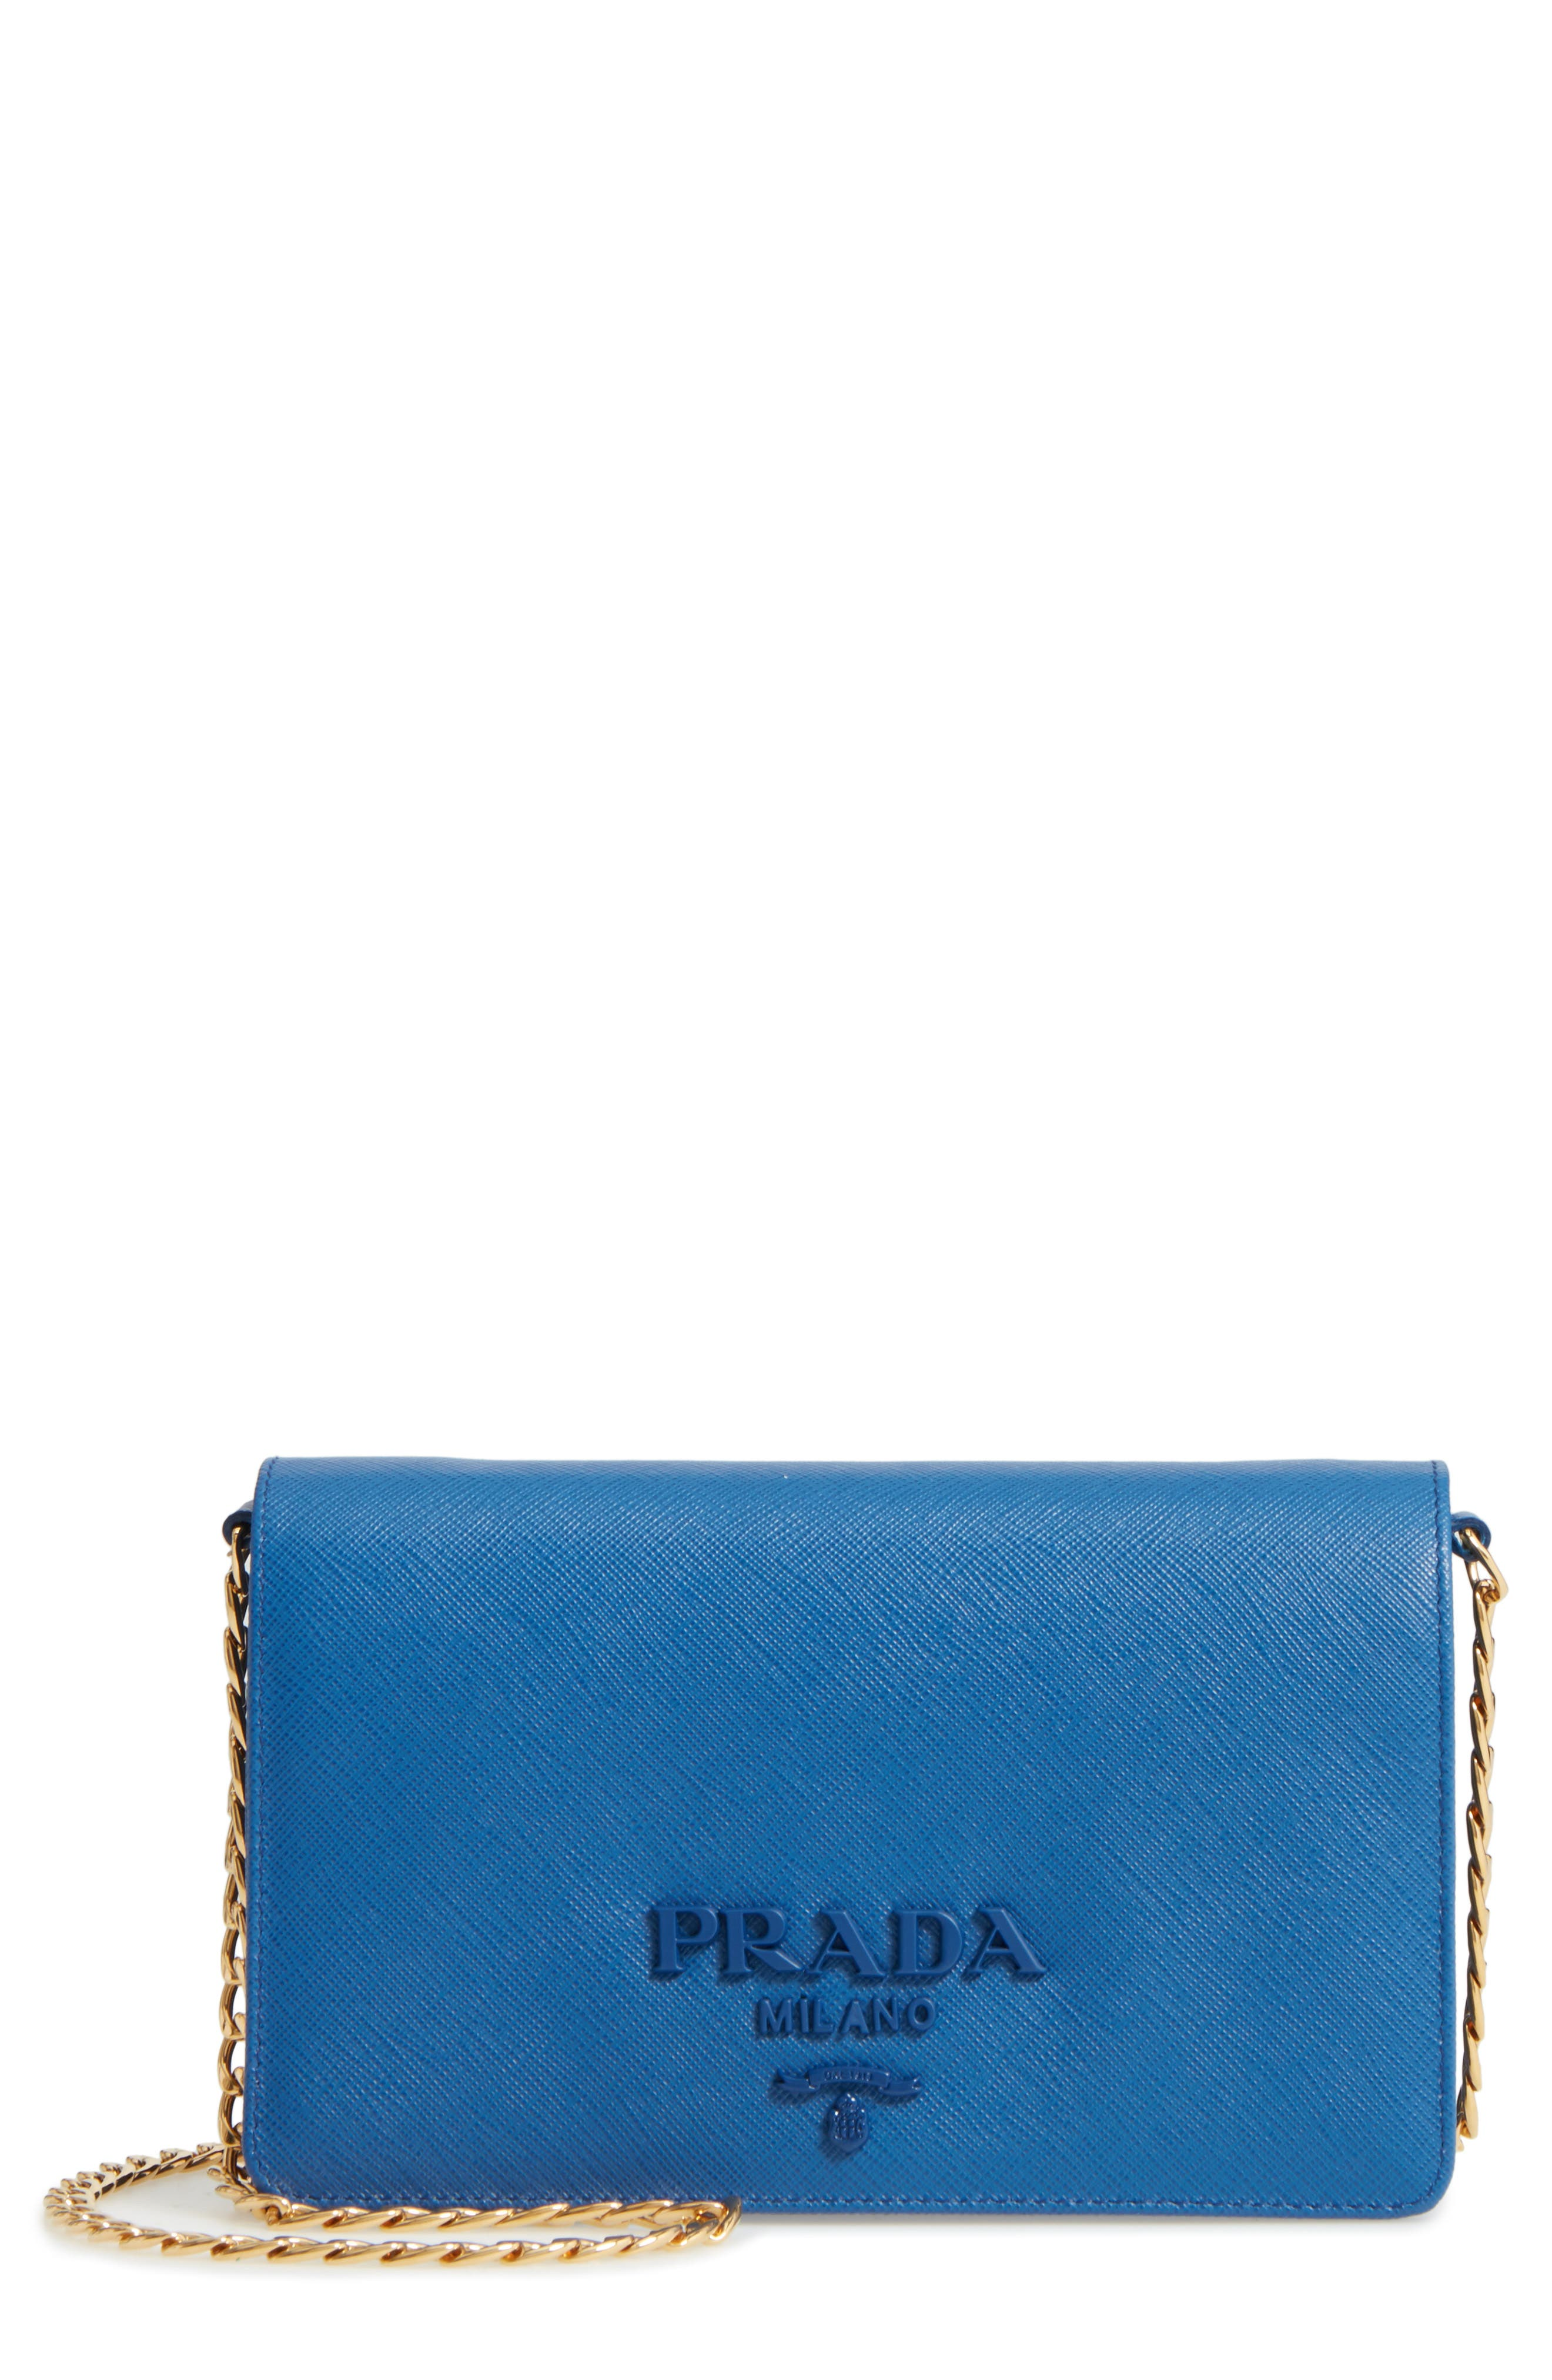 Prada Monochromatic Logo Crossbody Bag